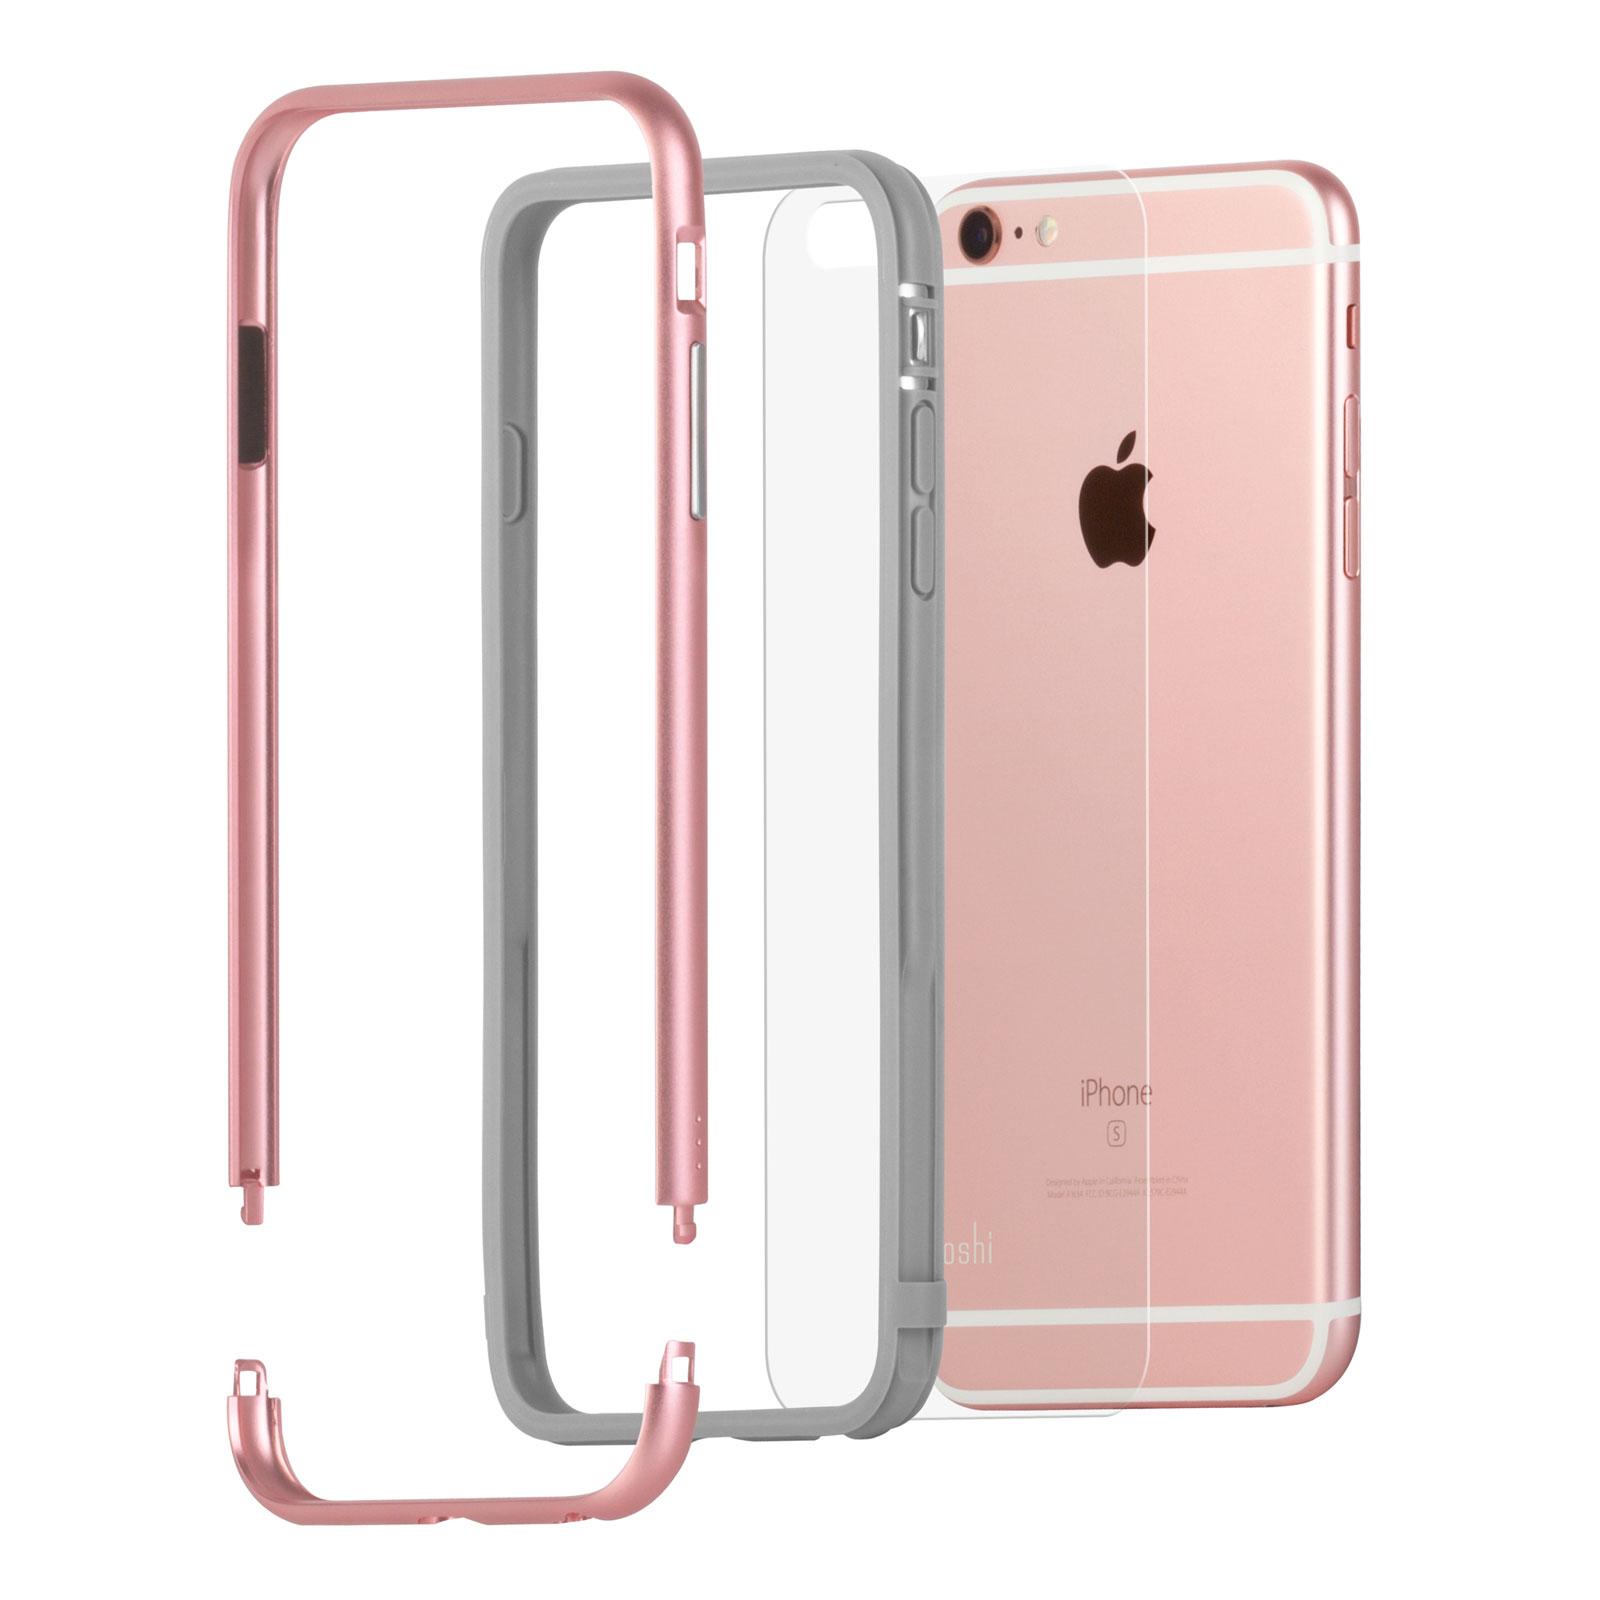 separation shoes 7b97e a9b92 iGlaze Luxe for iPhone 6 Plus/6s Plus